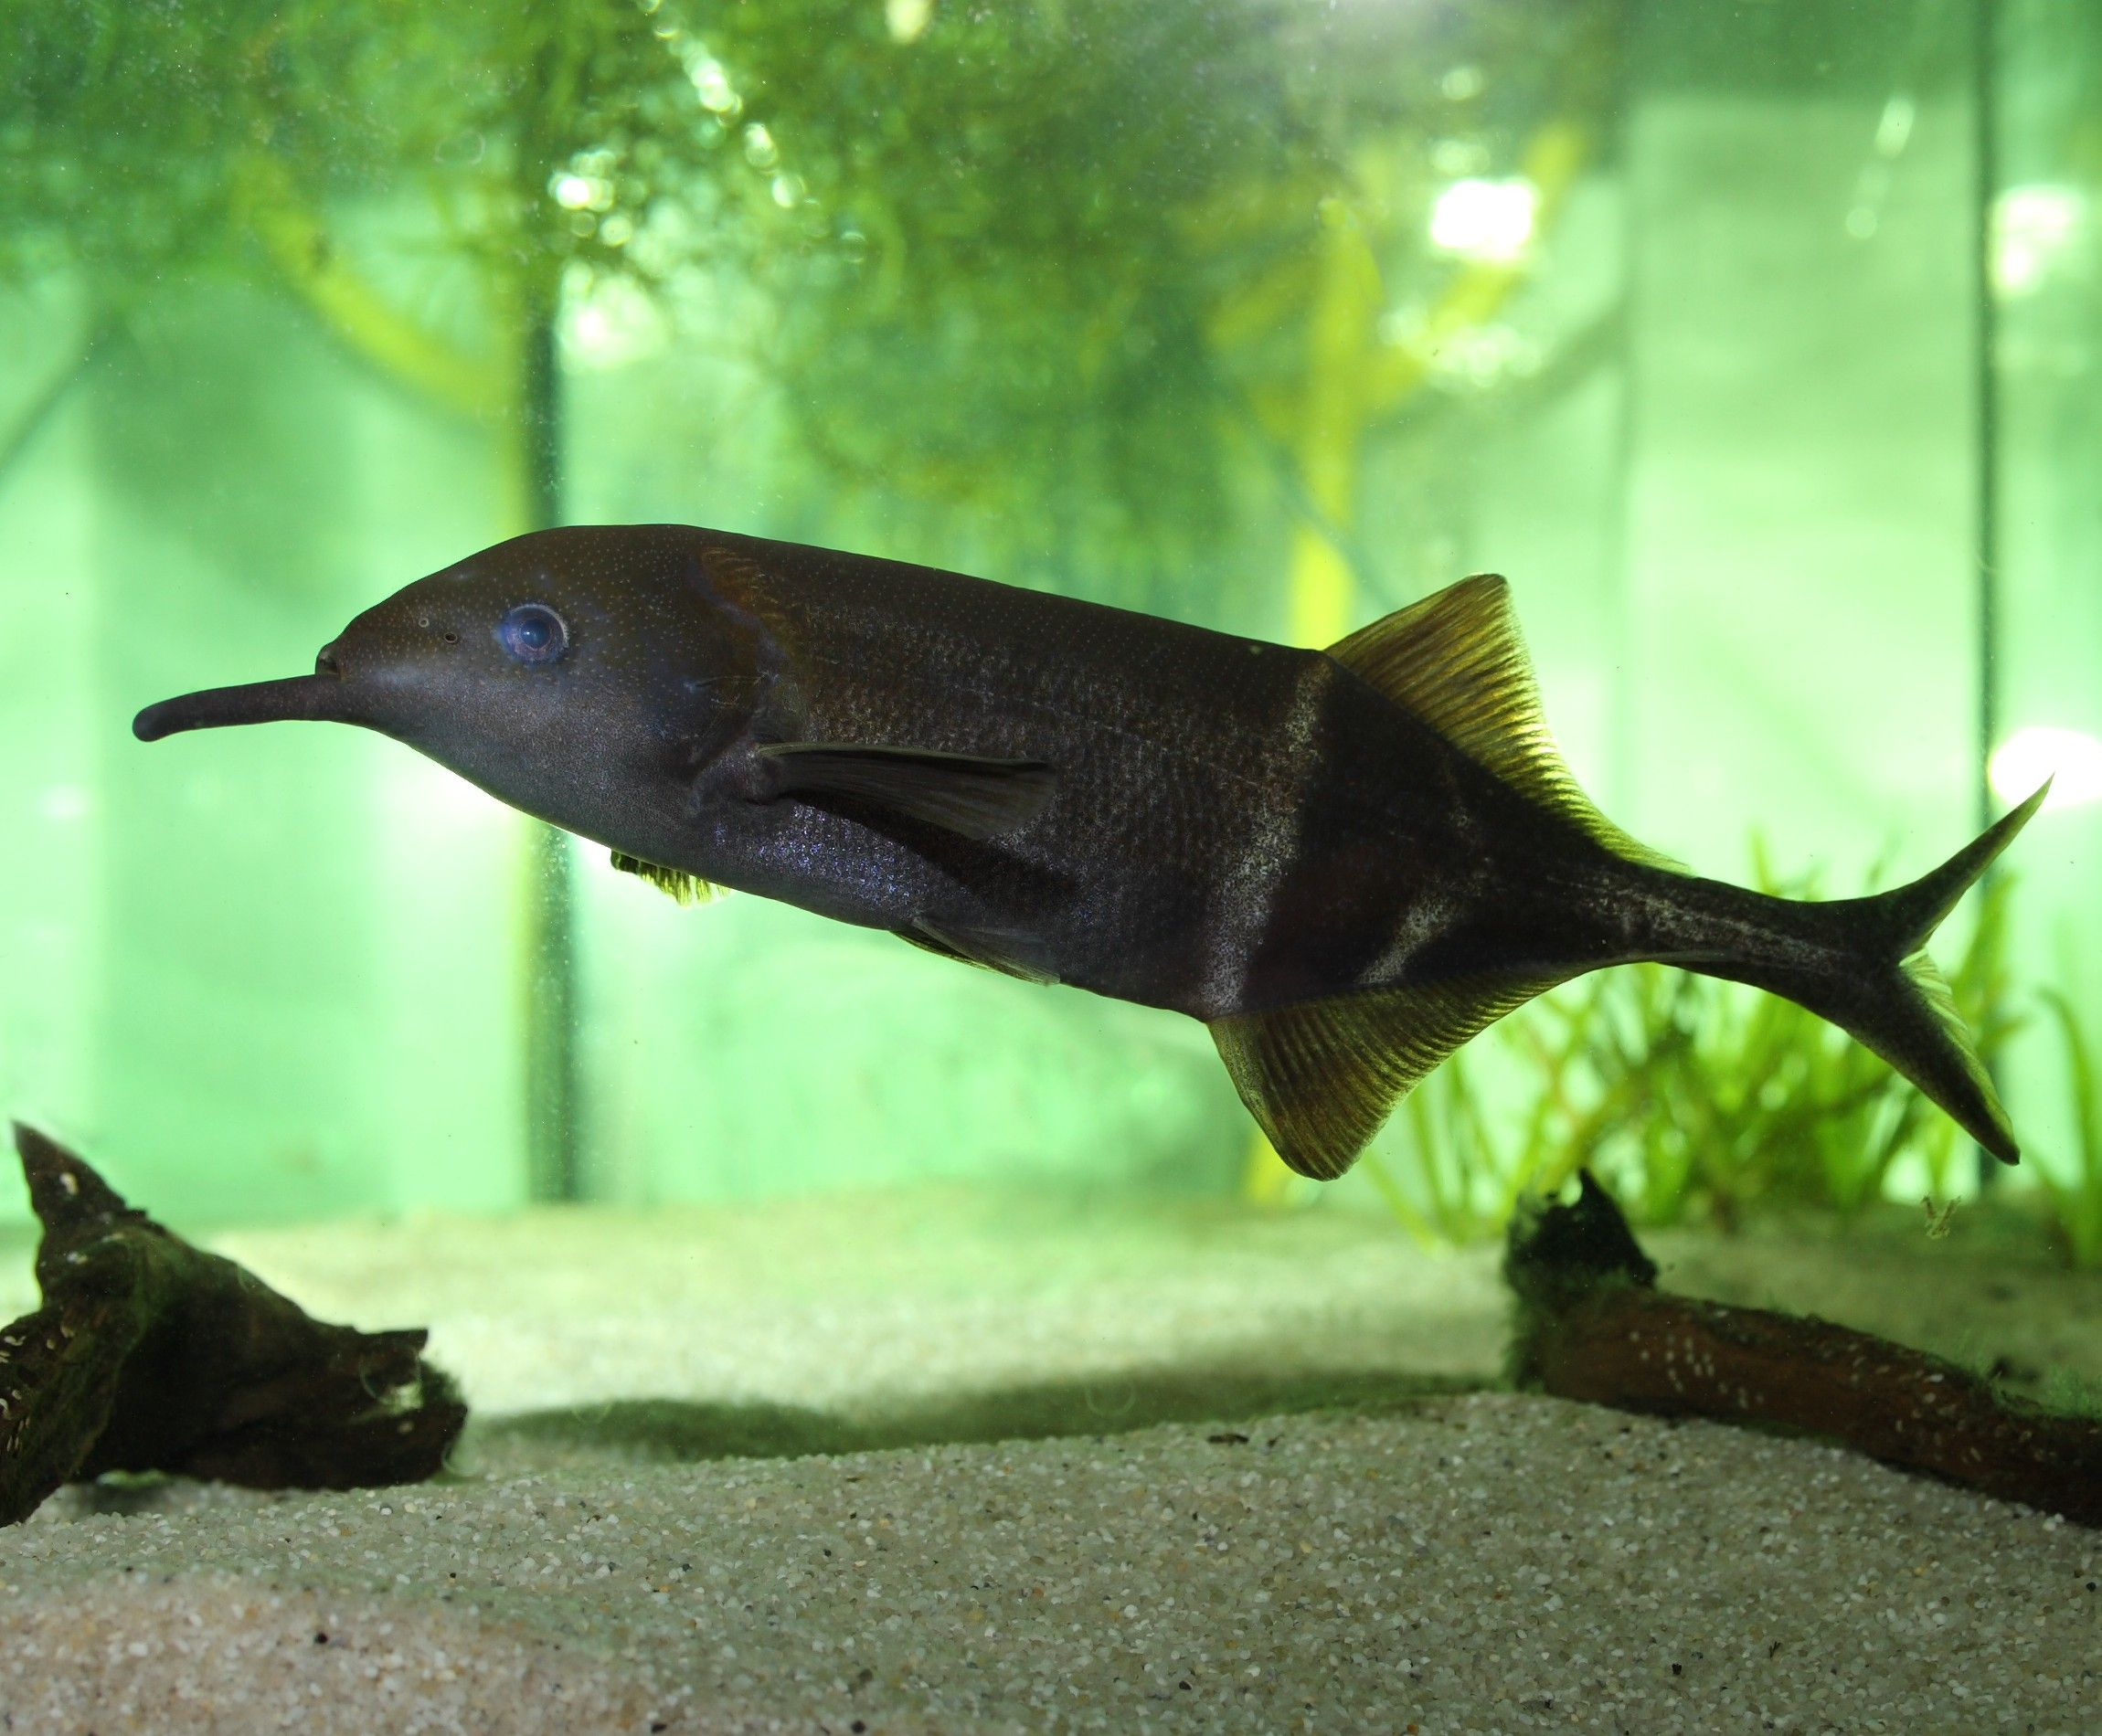 Elephant Nose Fish Peters Elephant Nose Fish Gnathonemus Petersii 2 Aquarium Fish Fish Weird Looking Animals